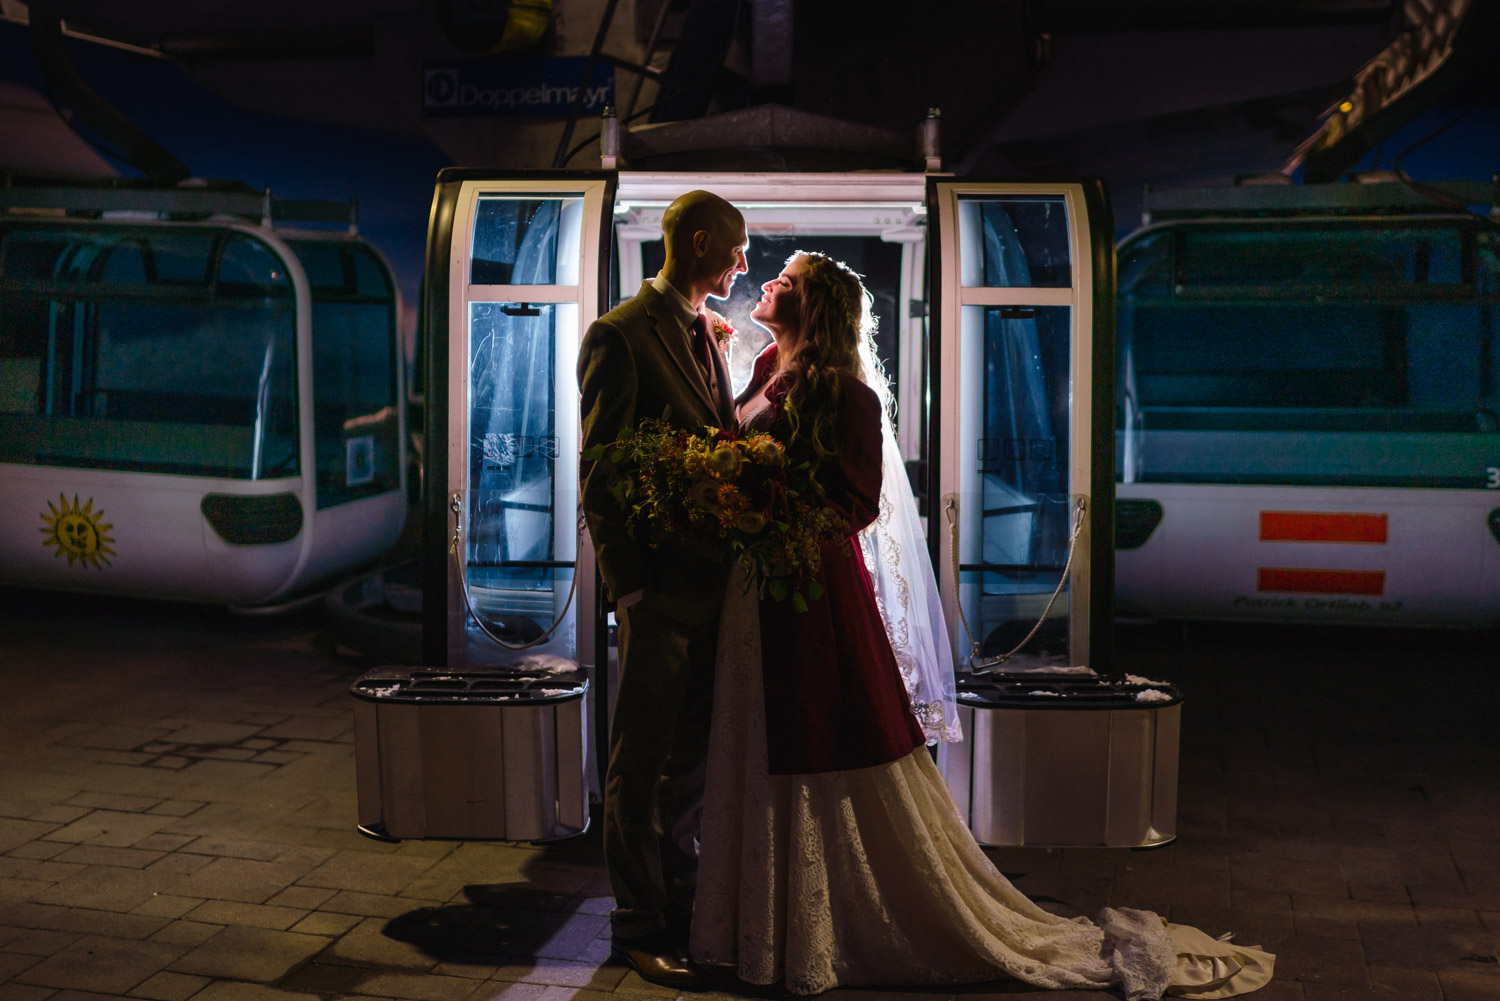 bride and groom in front of snowbasin resort tram at night